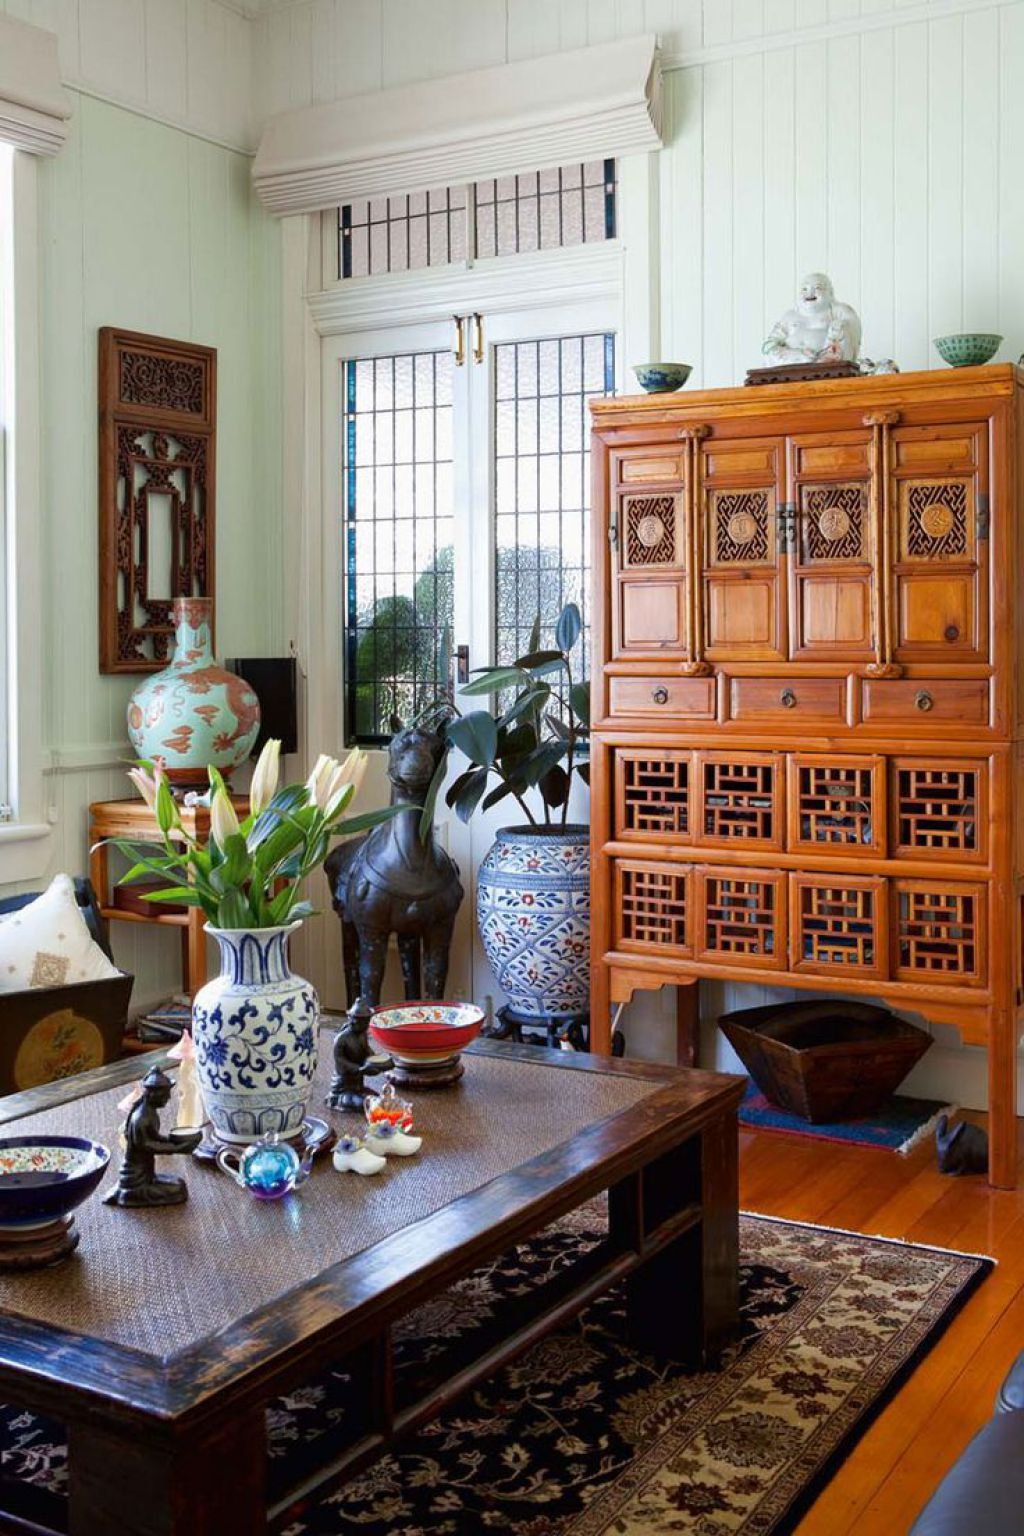 Asian Style Furniture Create A Natural And Balanced Interior With Images Asian Home Decor Asian Inspired Decor Oriental Interior